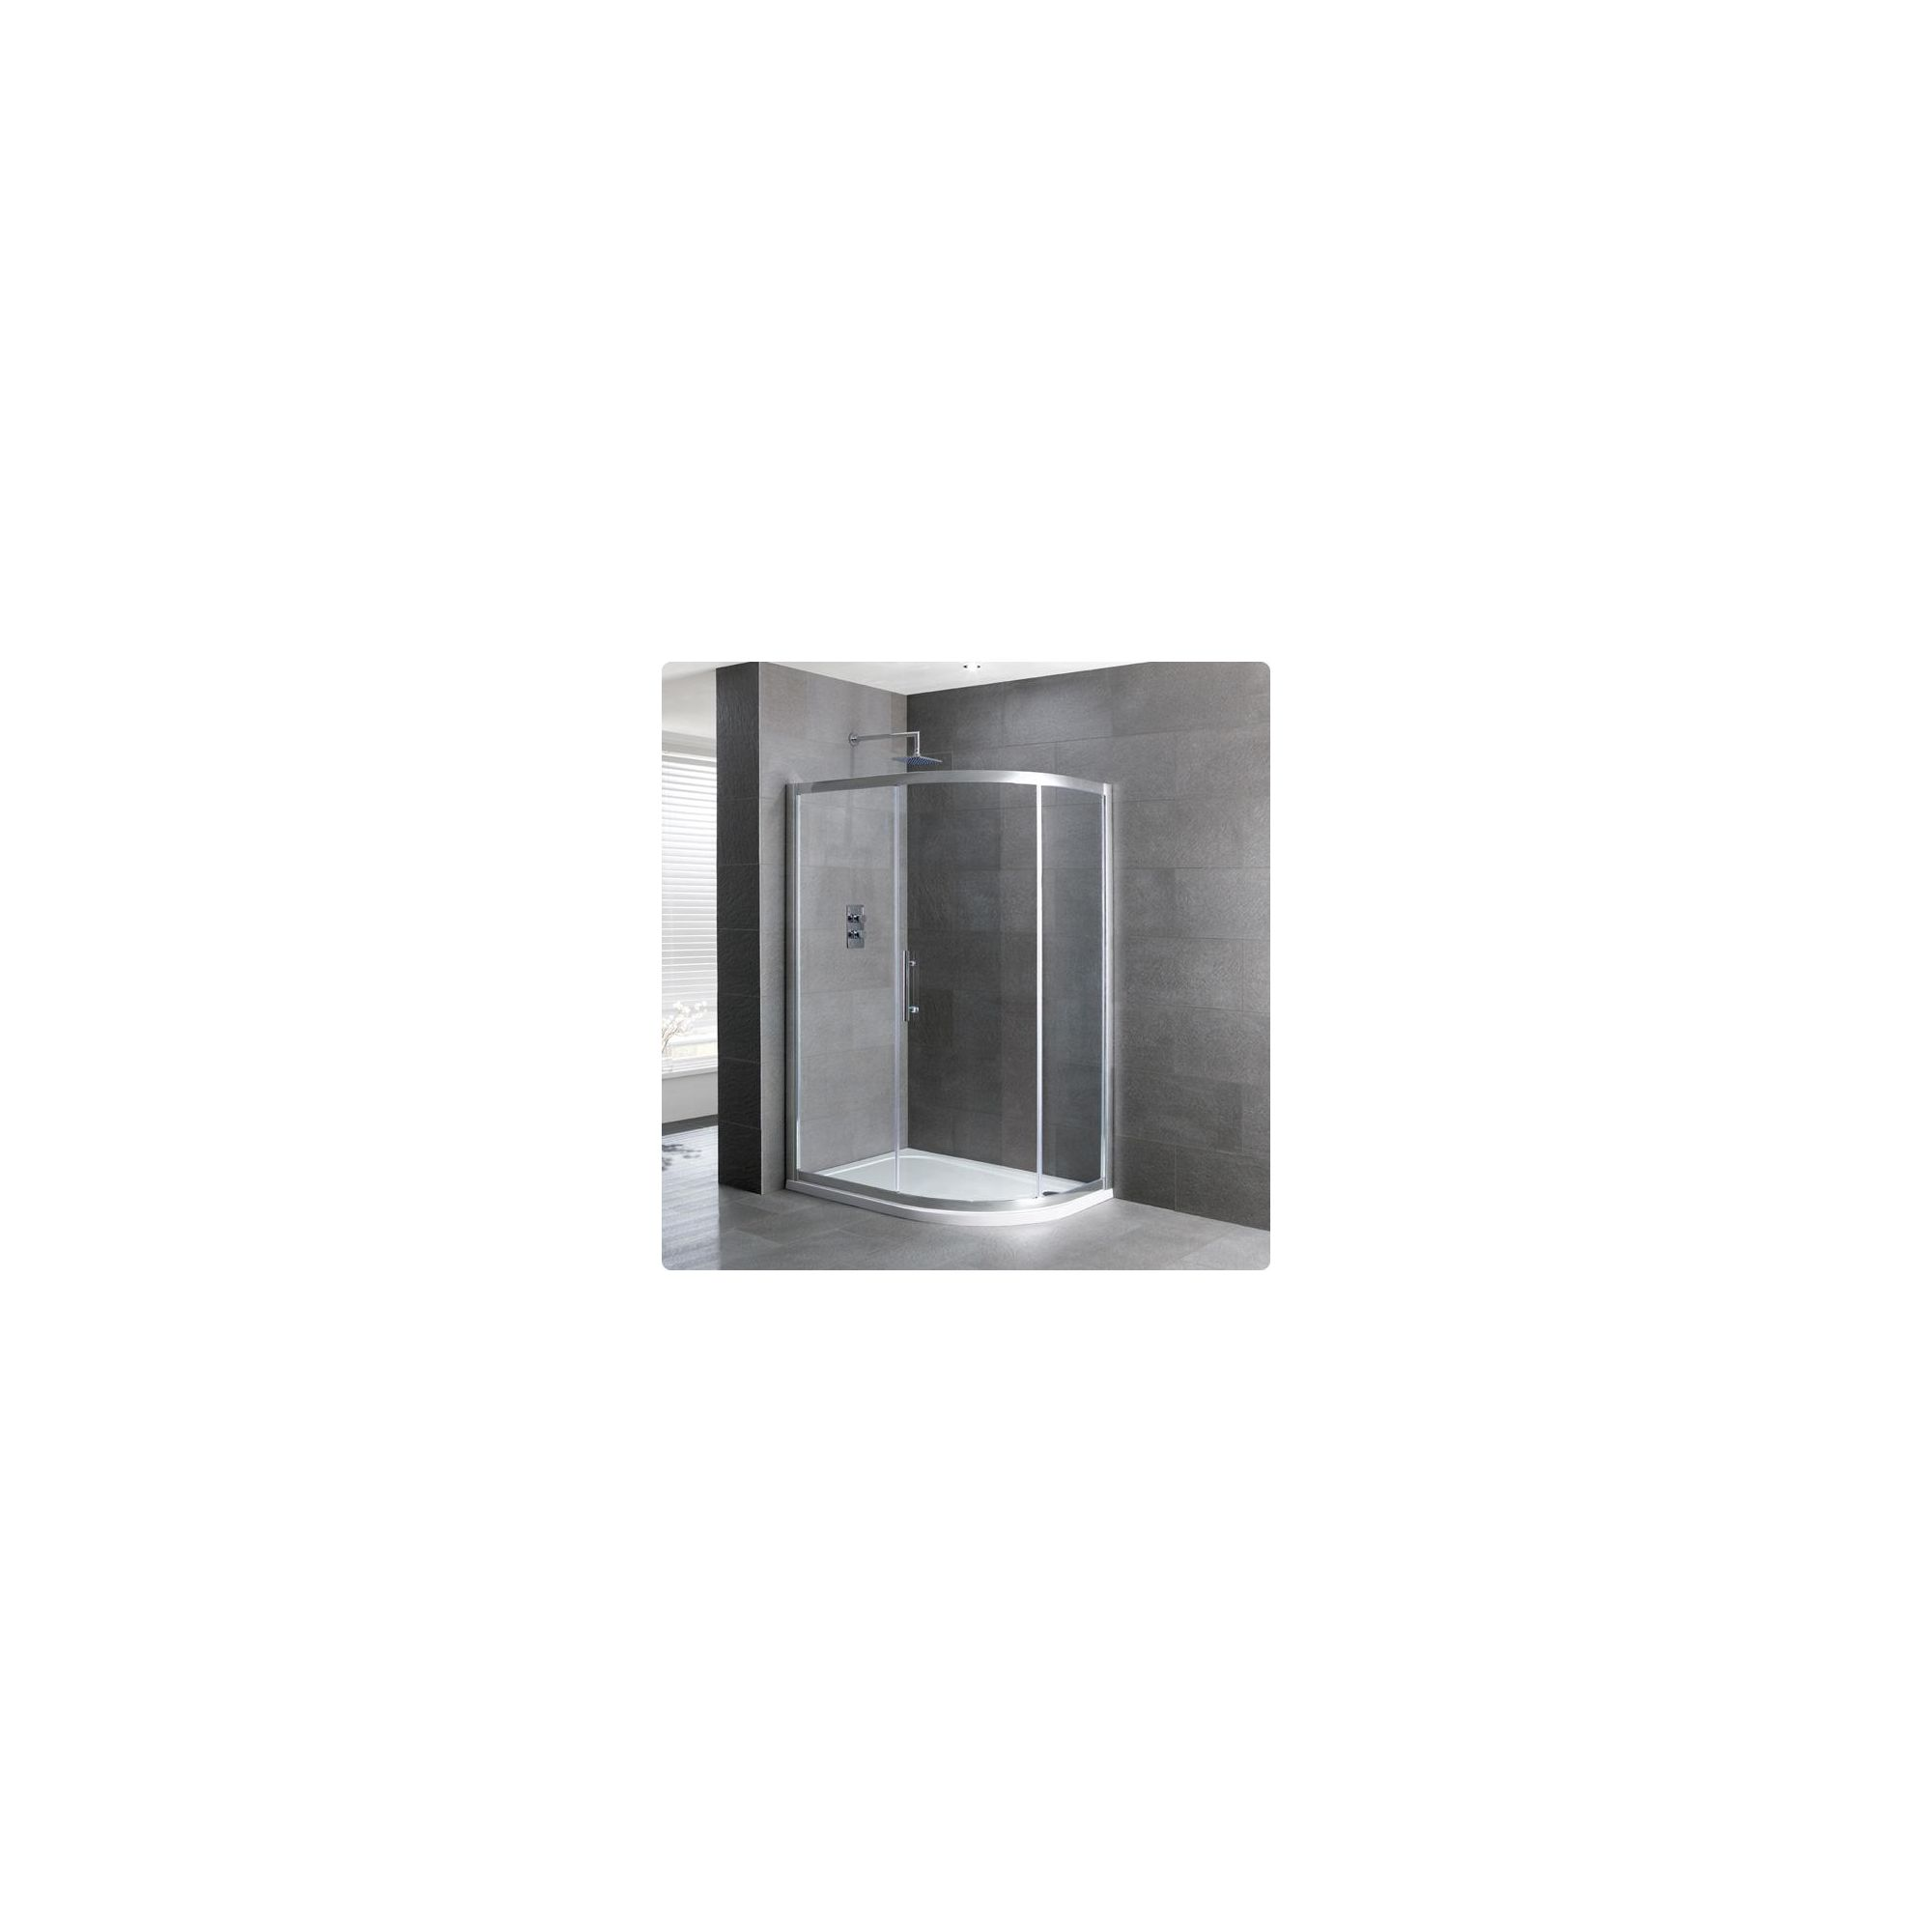 Duchy Select Silver 1 Door Offset Quadrant Shower Enclosure 1200mm x 900mm, Standard Tray, 6mm Glass at Tescos Direct